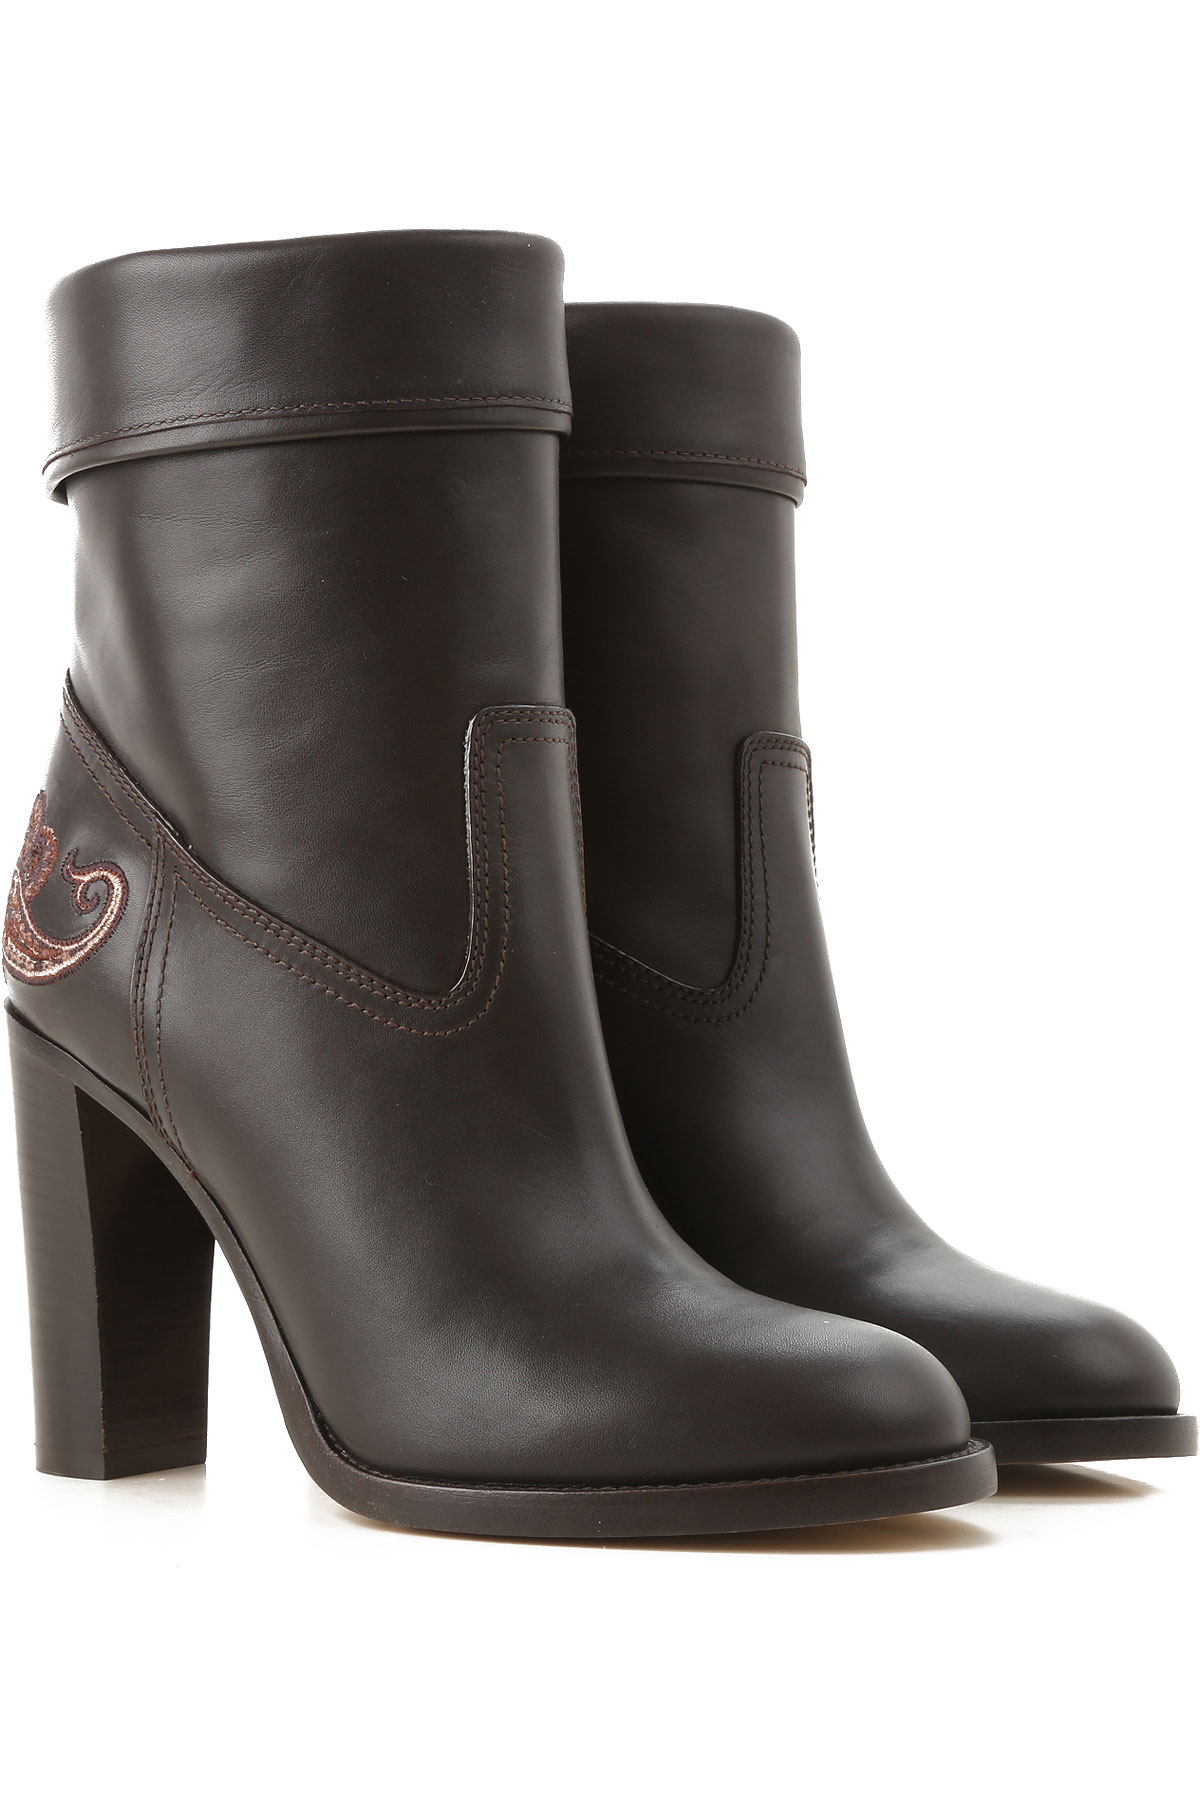 Image of Etro Boots for Women, Booties, Black, Leather, 2017, 10 6 7 8 9